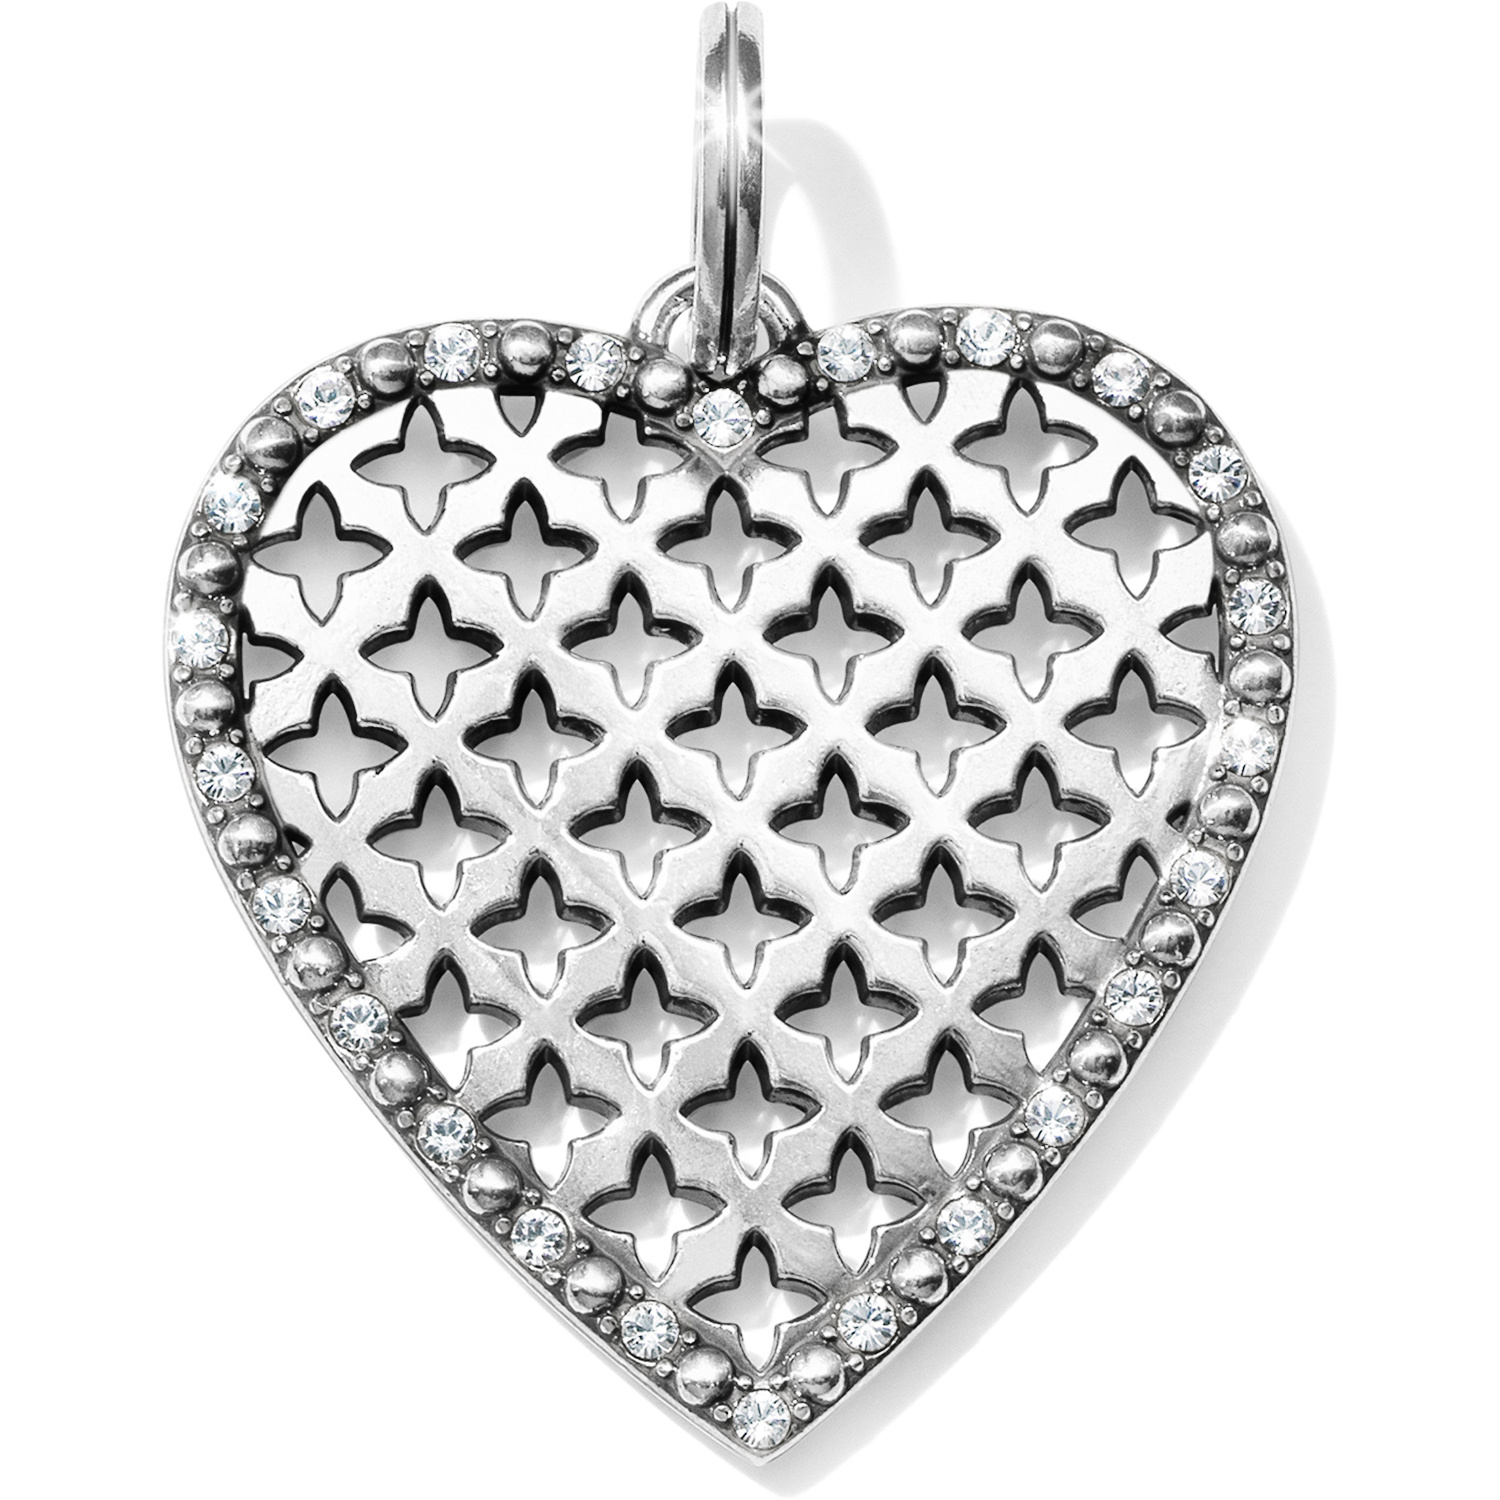 Orchid Trellis New Diamontrigue Jewelry: Trellis Heart Short Necklace Amulet Sets